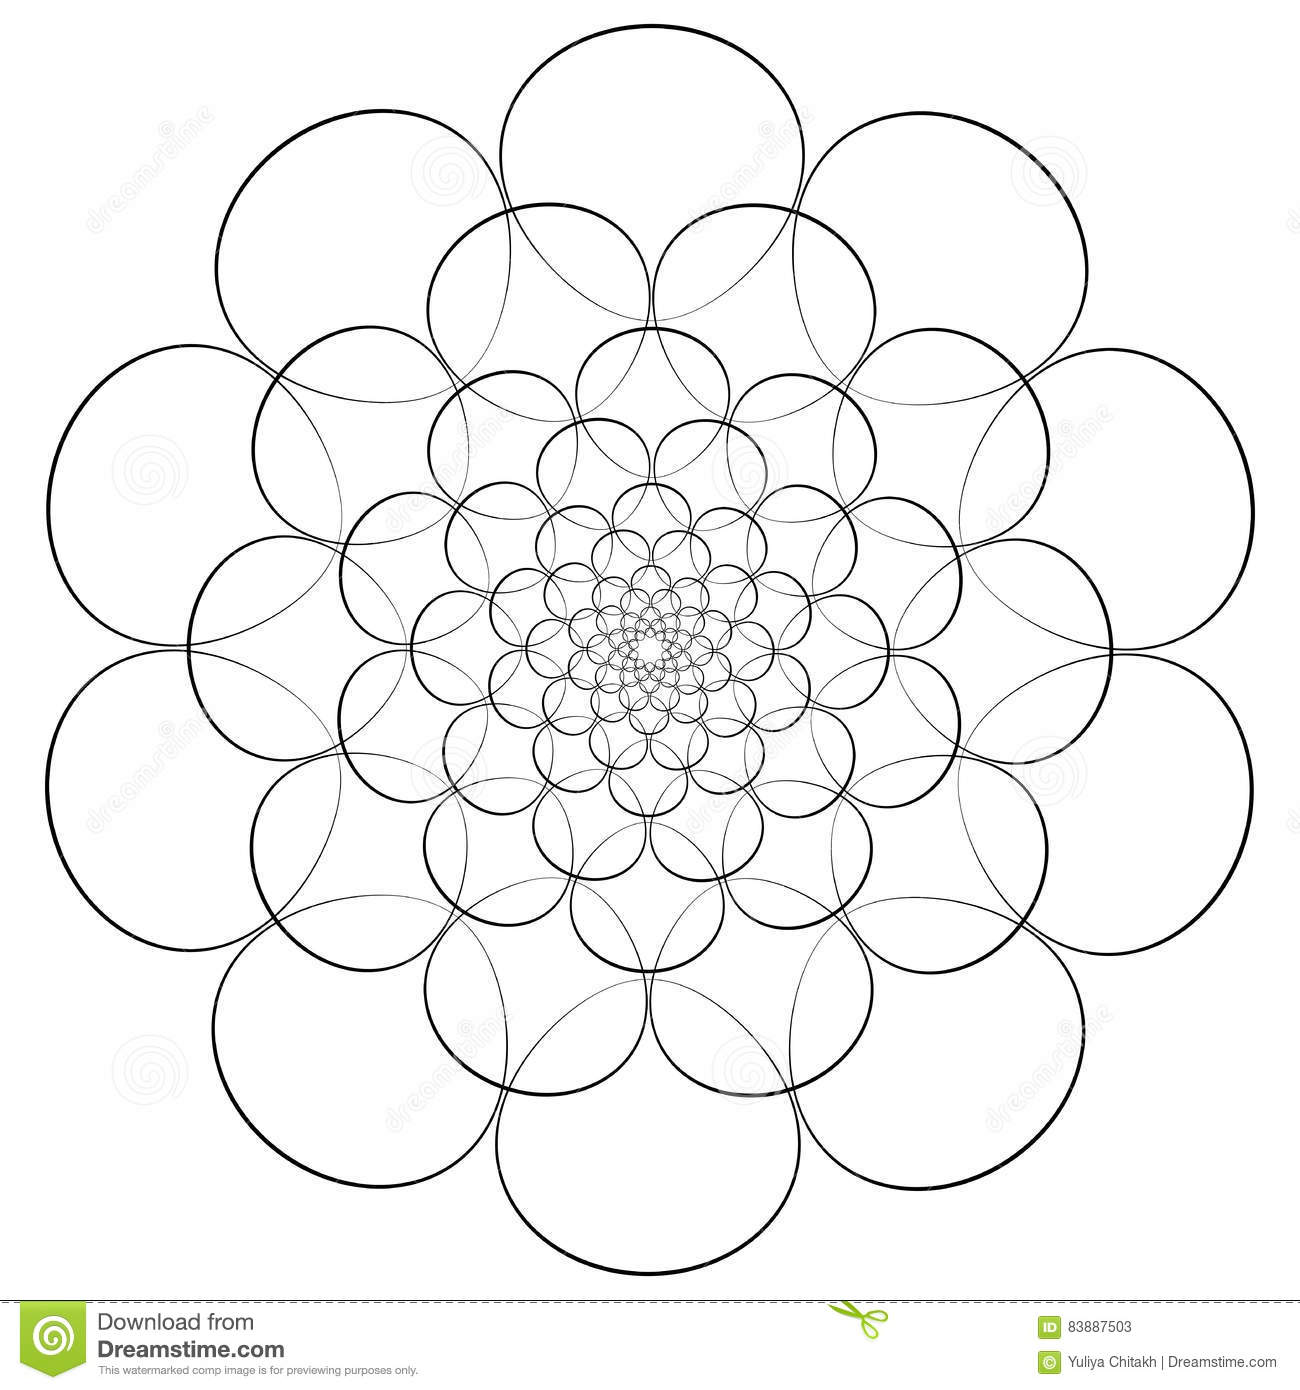 vector illustration abstract floral print abstract flower mandala or star for coloring